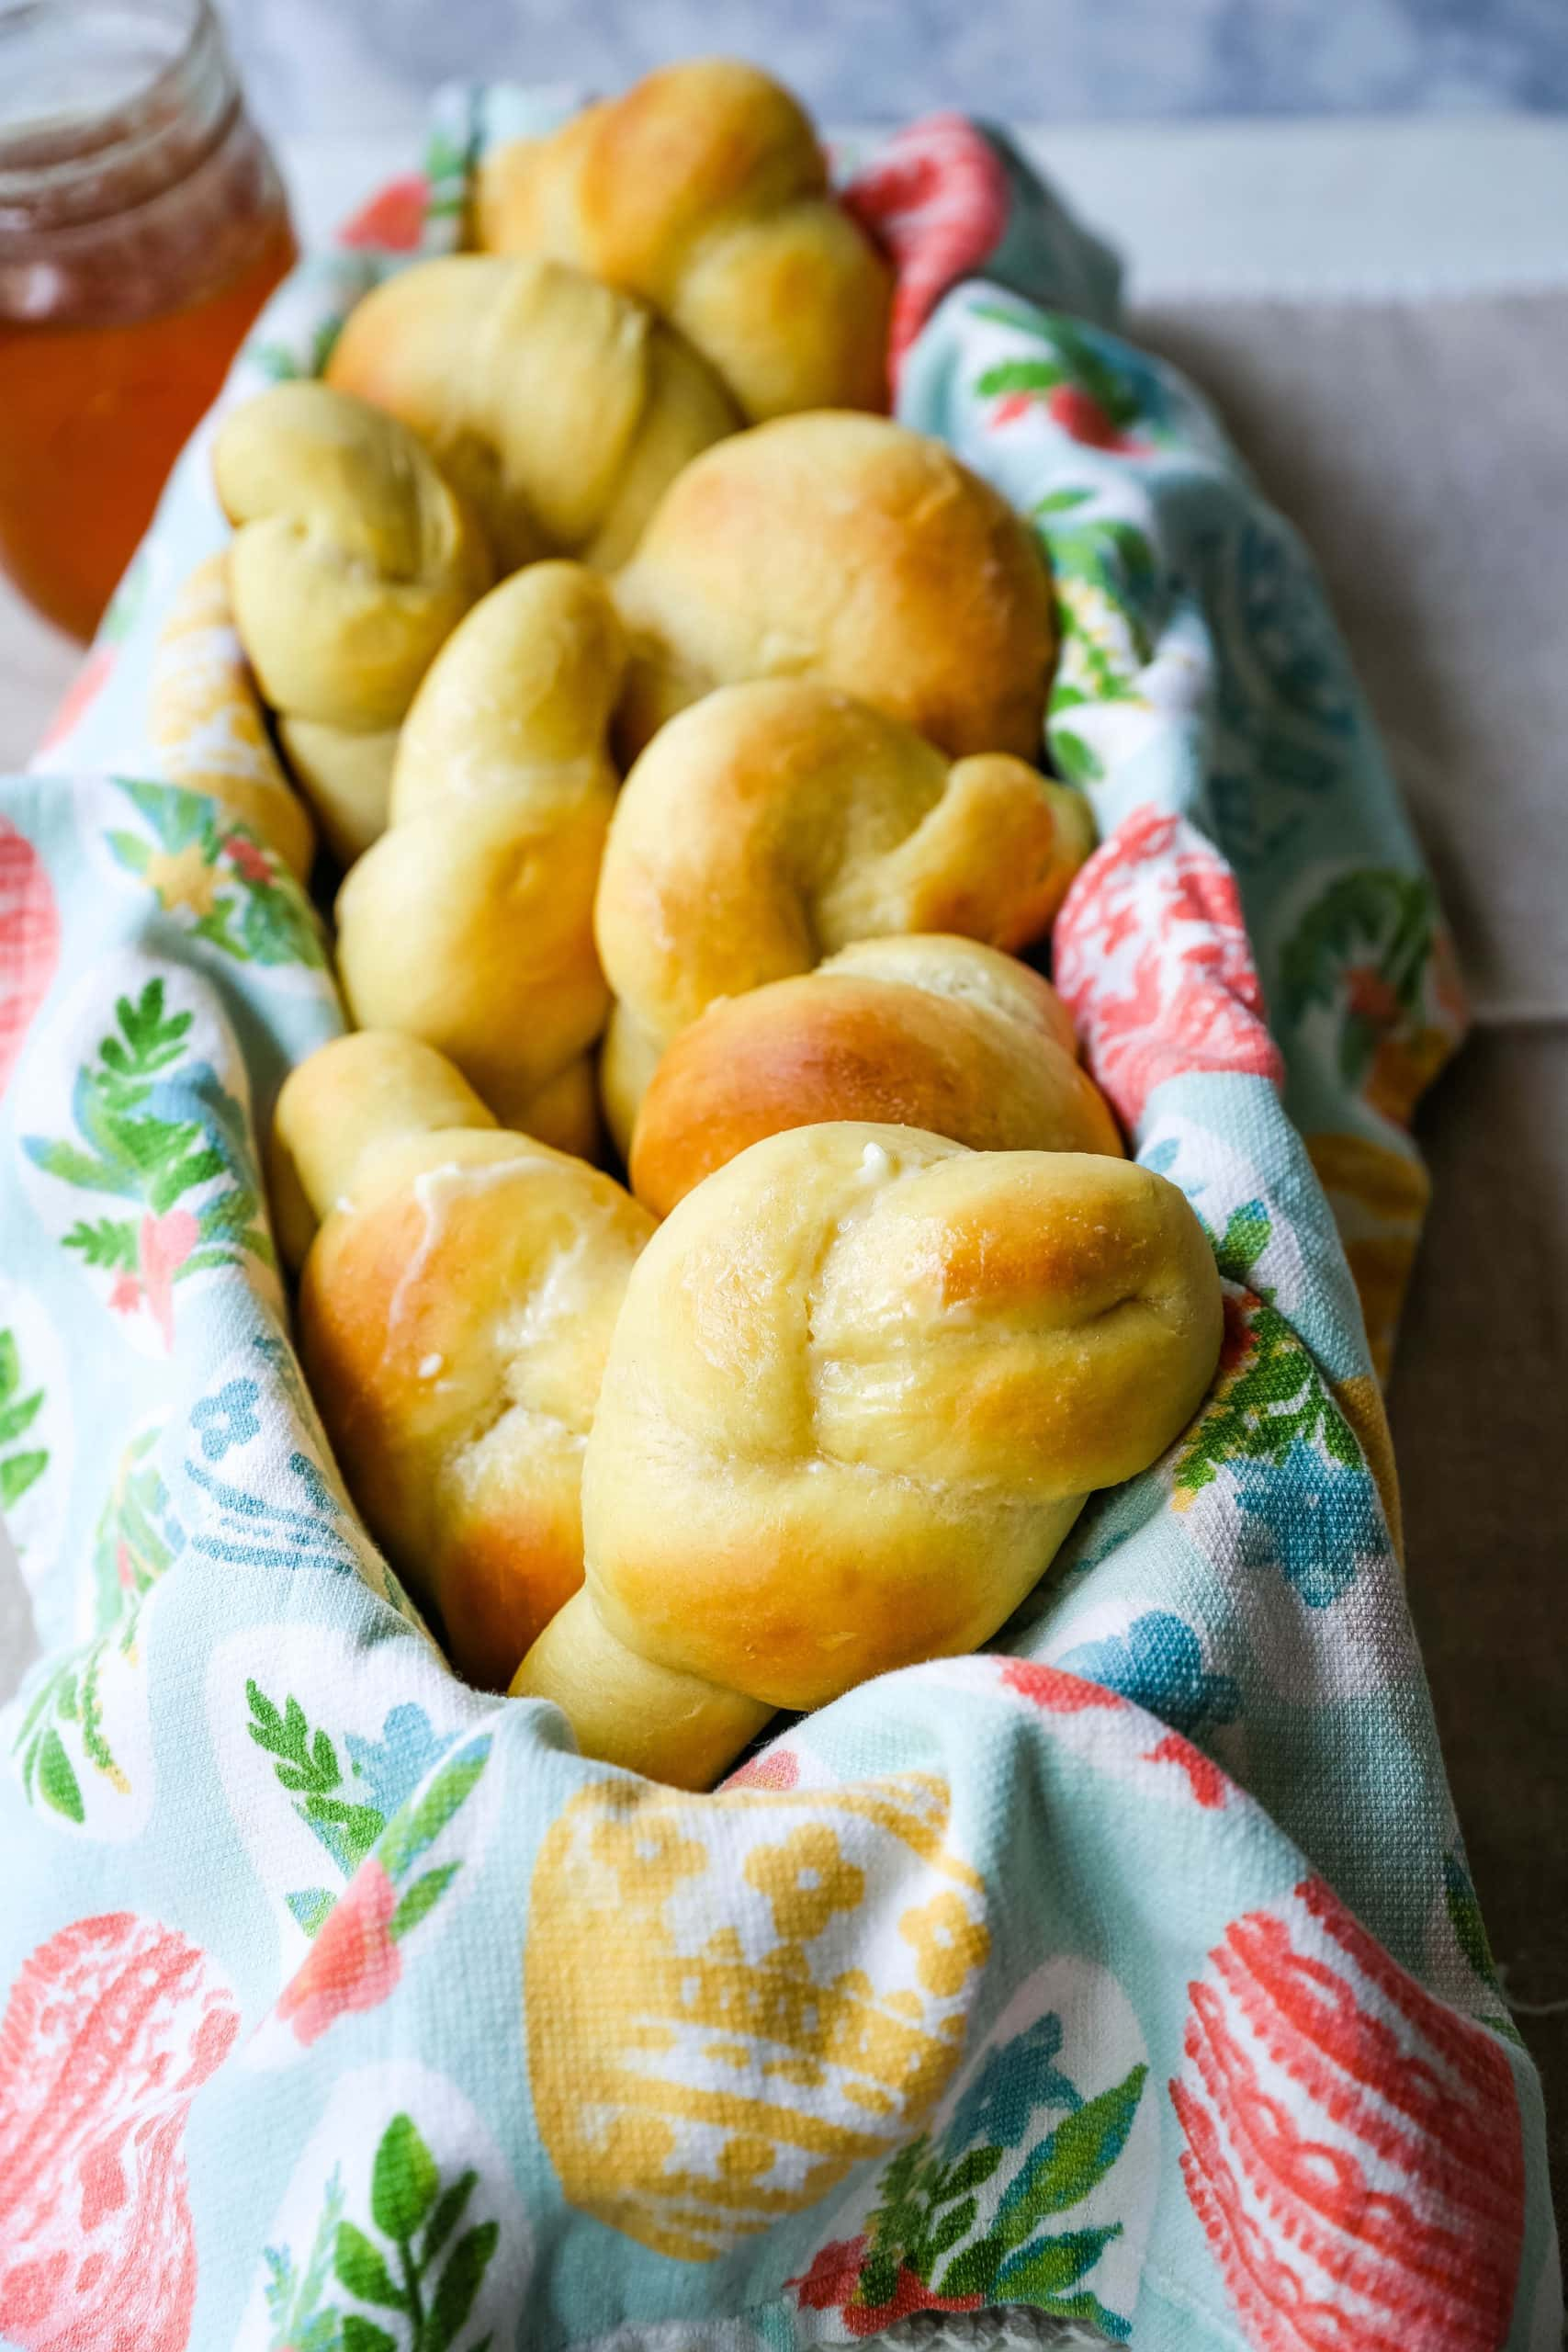 Homemade Knotted Rolls Buttery, fluffy homemade rolls tied in knot and brushed with butter. The perfect knotted rolls recipe! www.modernhoney.com #rolls #easter #dinnerrolls #knottedrolls